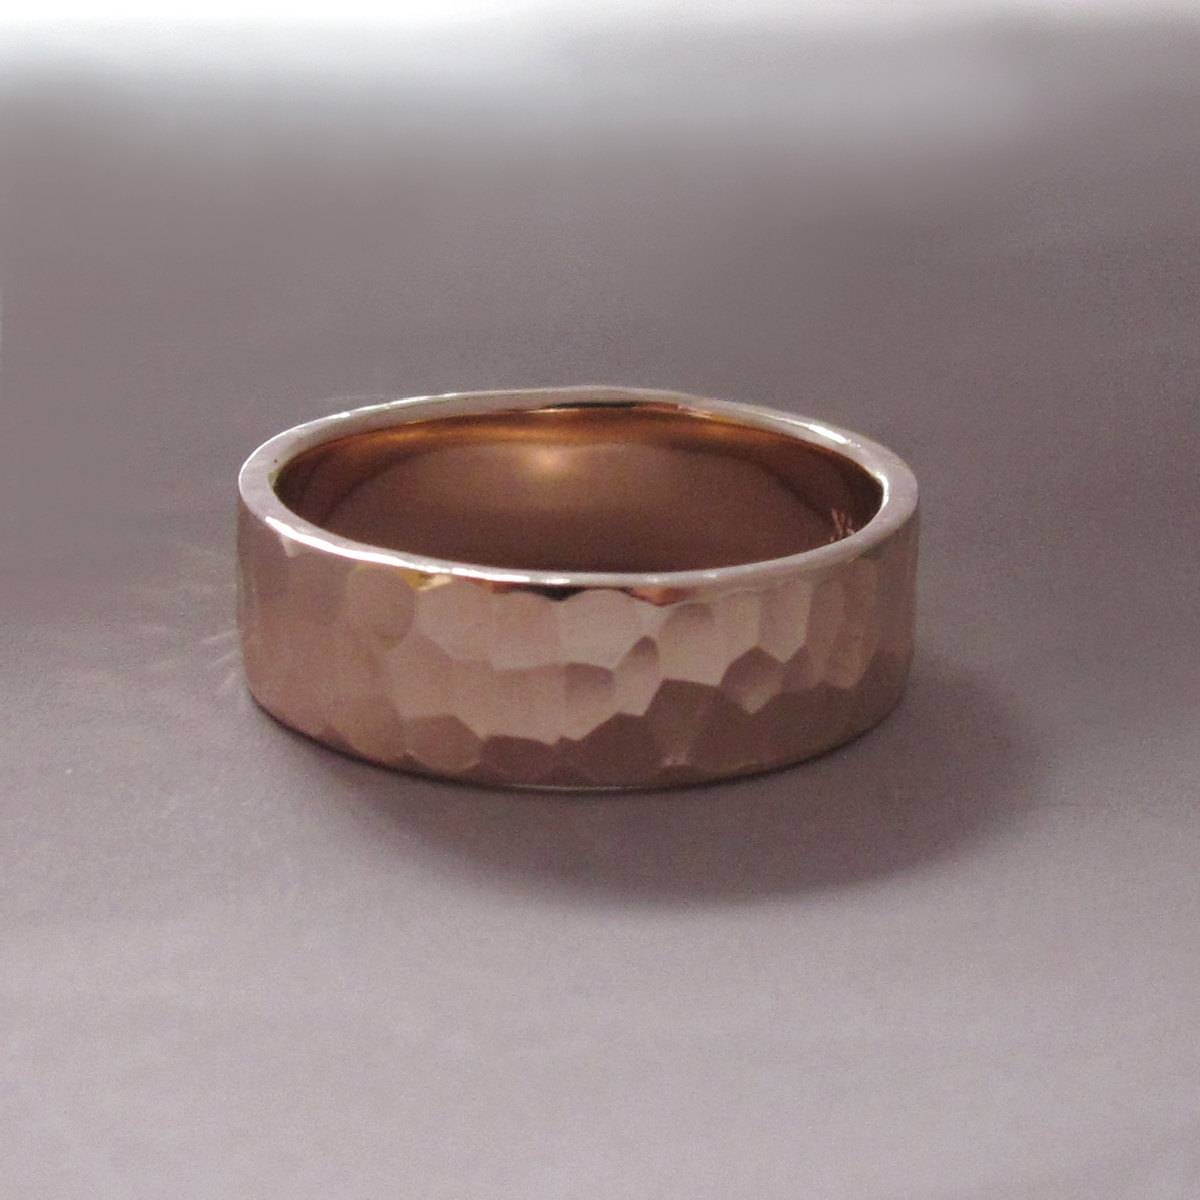 14K Rose Gold Wedding Ring Hammered Polished Or Matte Pertaining To Hammered Rose Gold Wedding Bands (View 3 of 15)